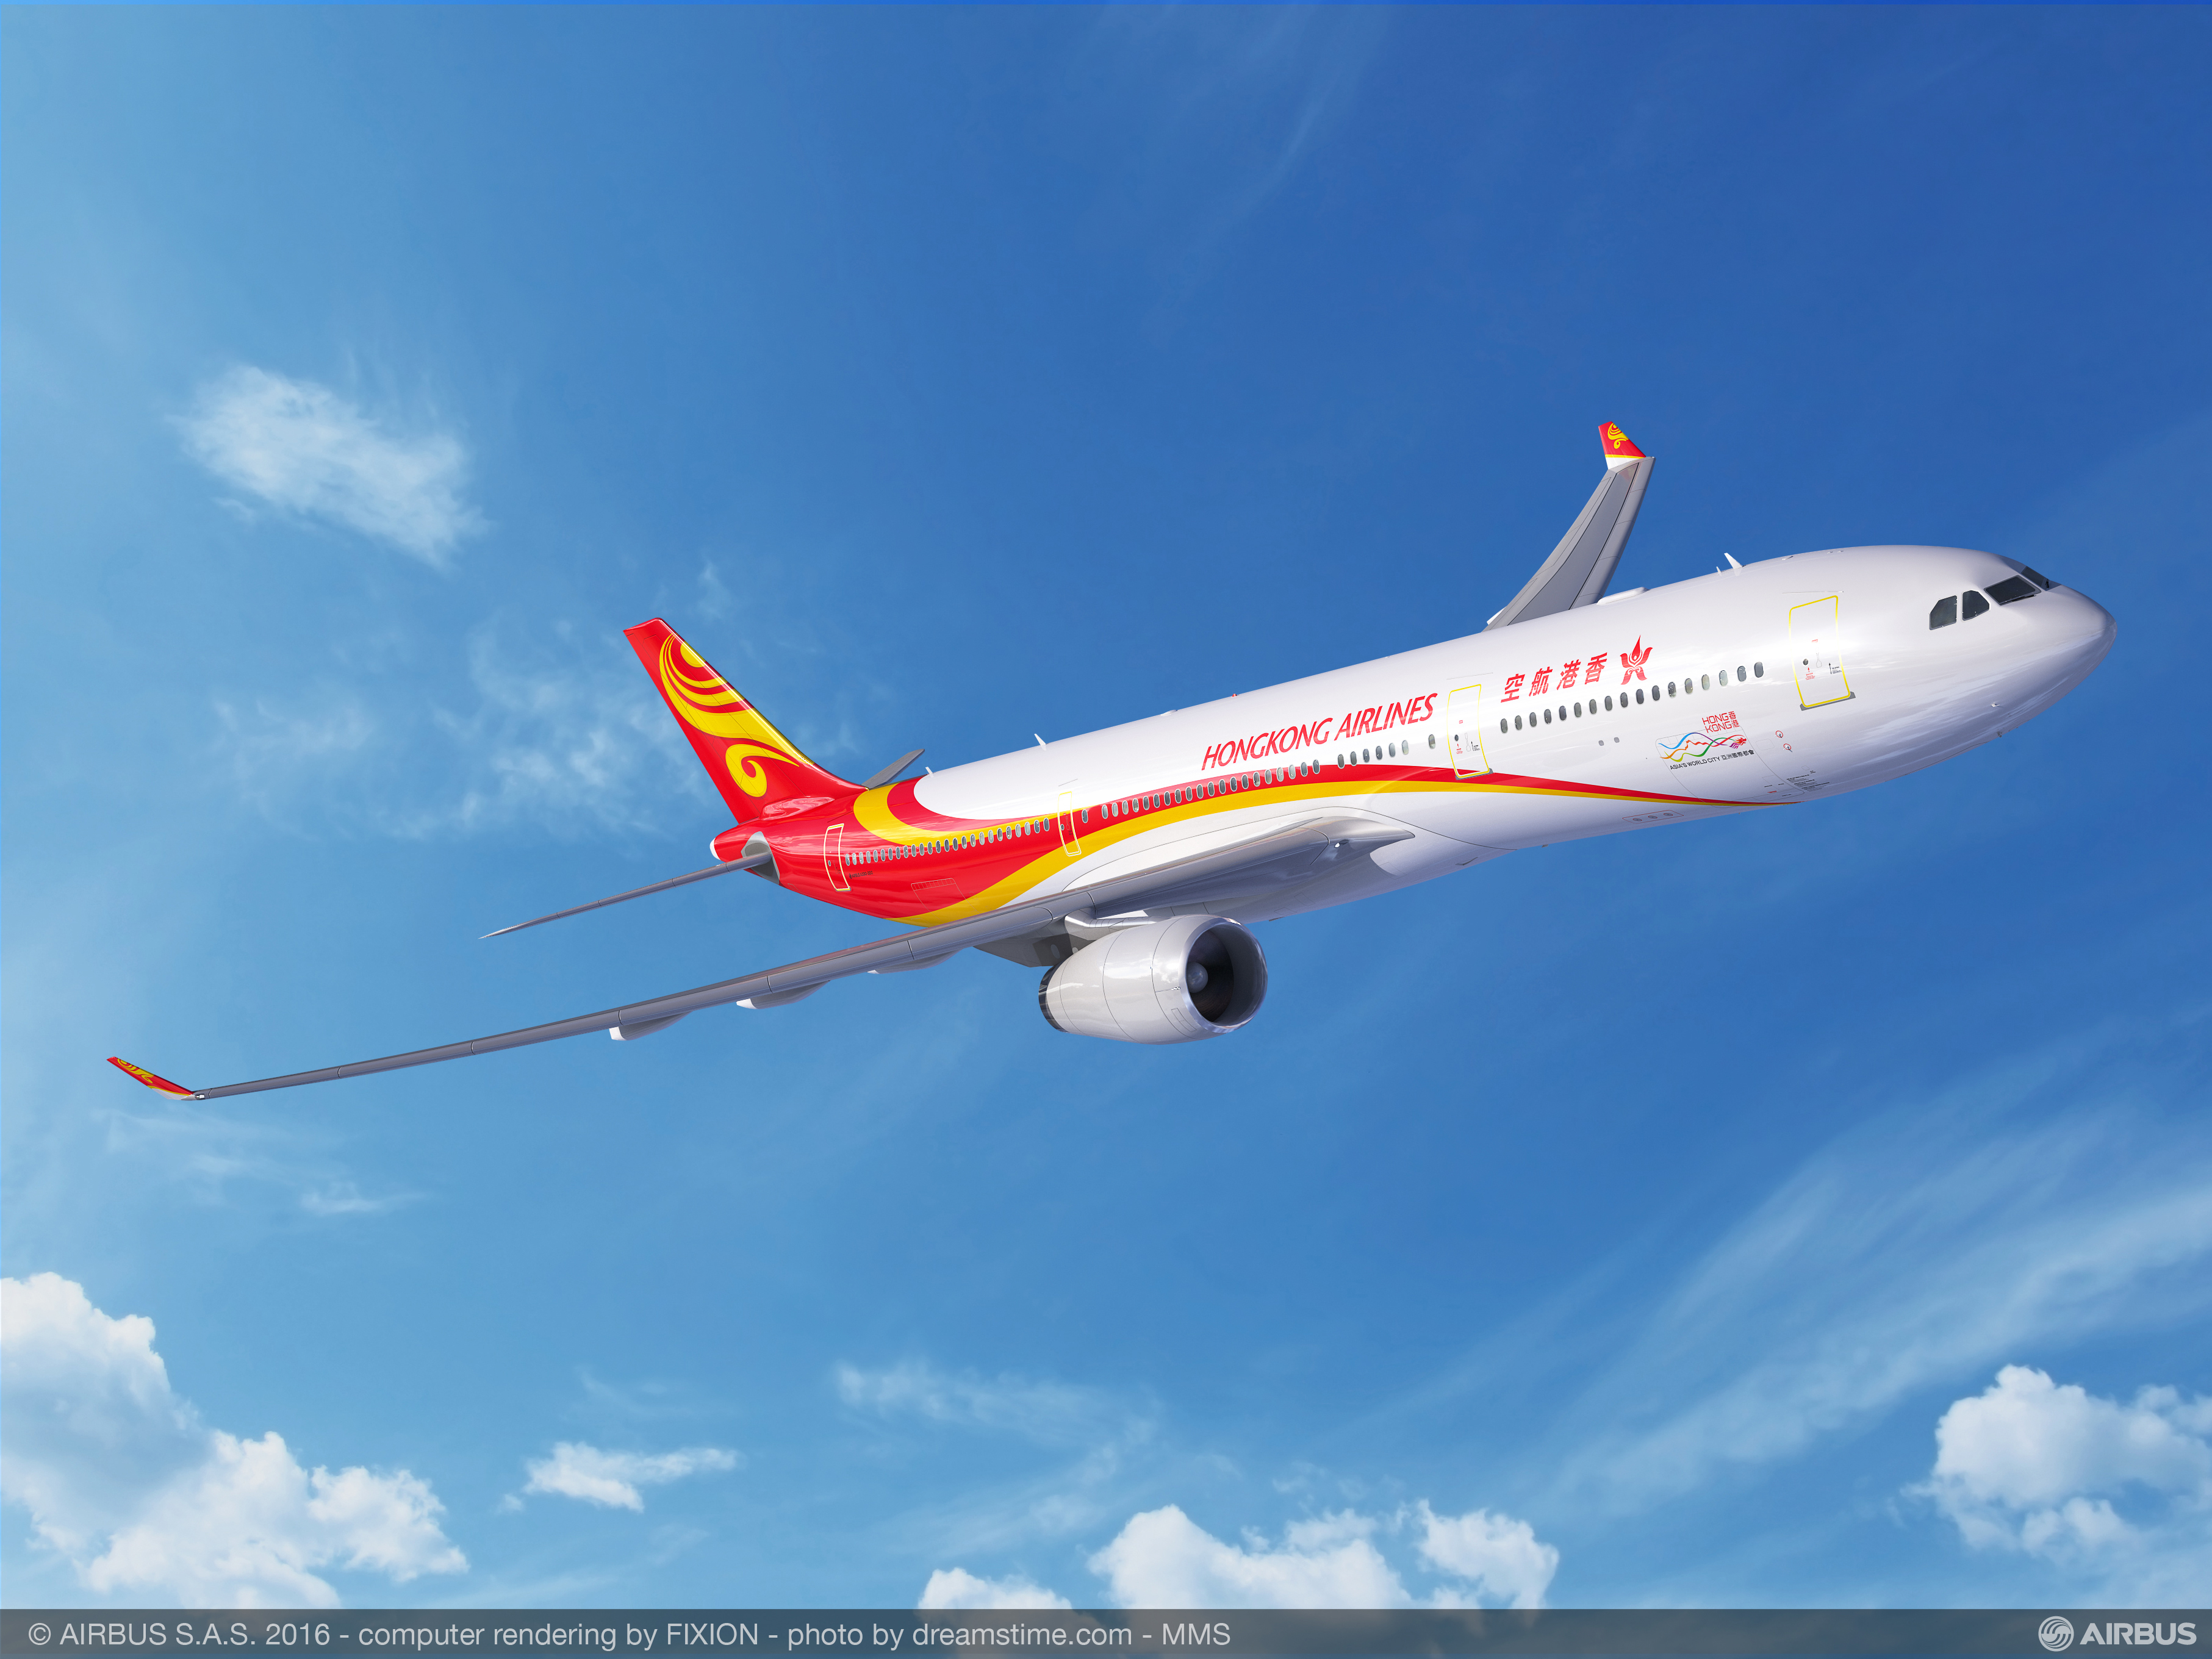 Hong Kong Airlines Grows Network to 35 Destinations and Expands Fleet to 32 Aircraft